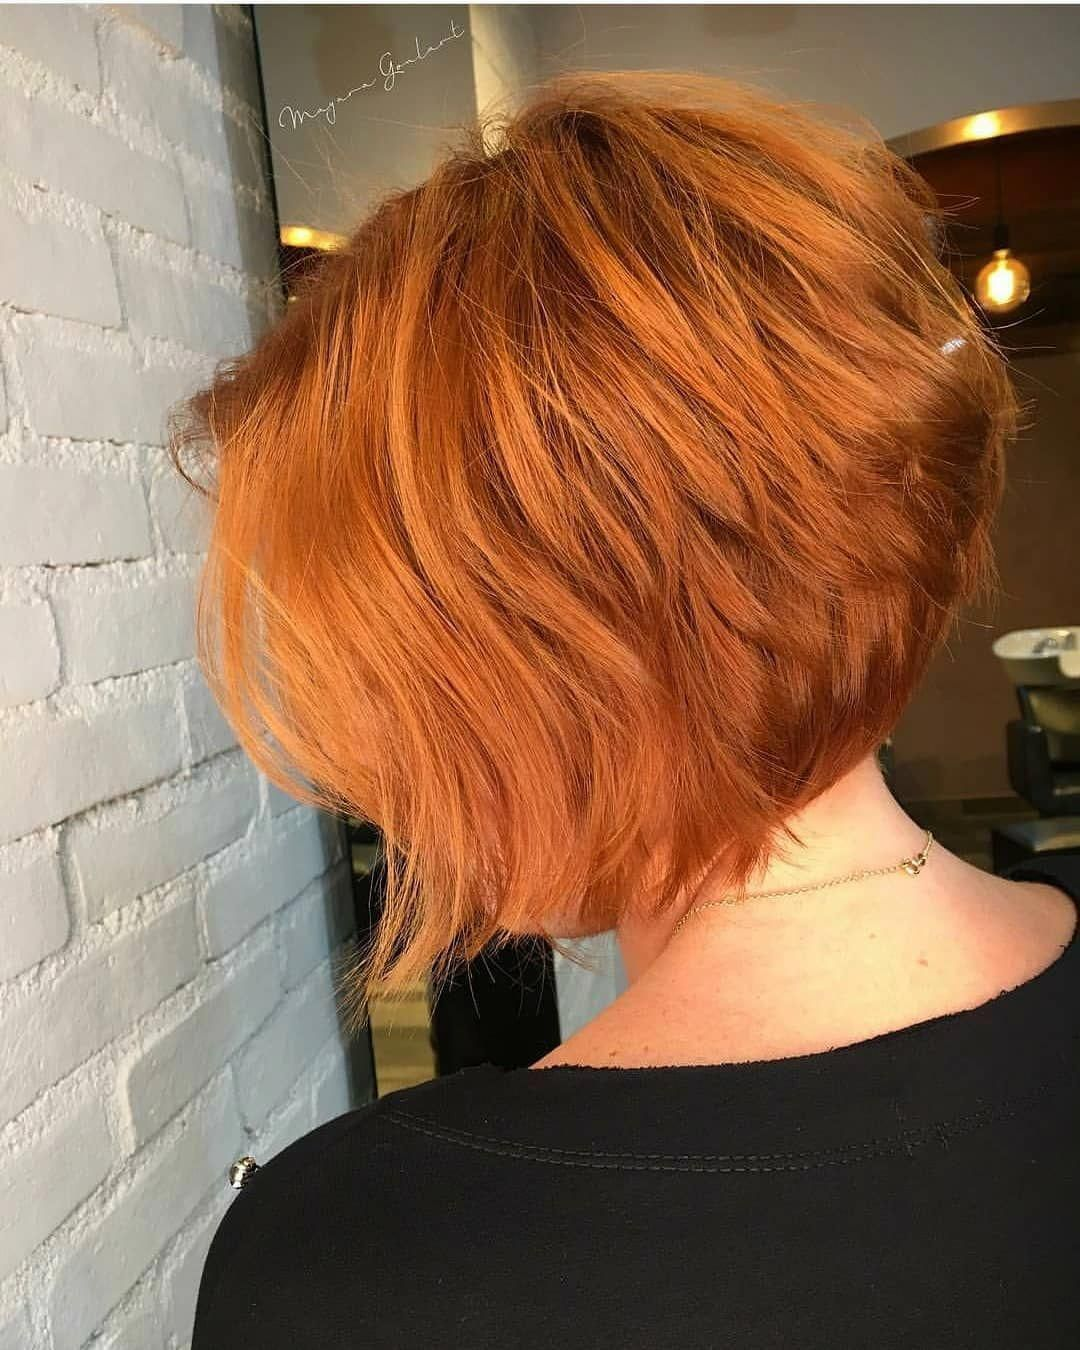 Hayley Williams Hair Orange Bob Hayley Williams Short Hair Straight Bangs Hairstyles Haley Williams Hair